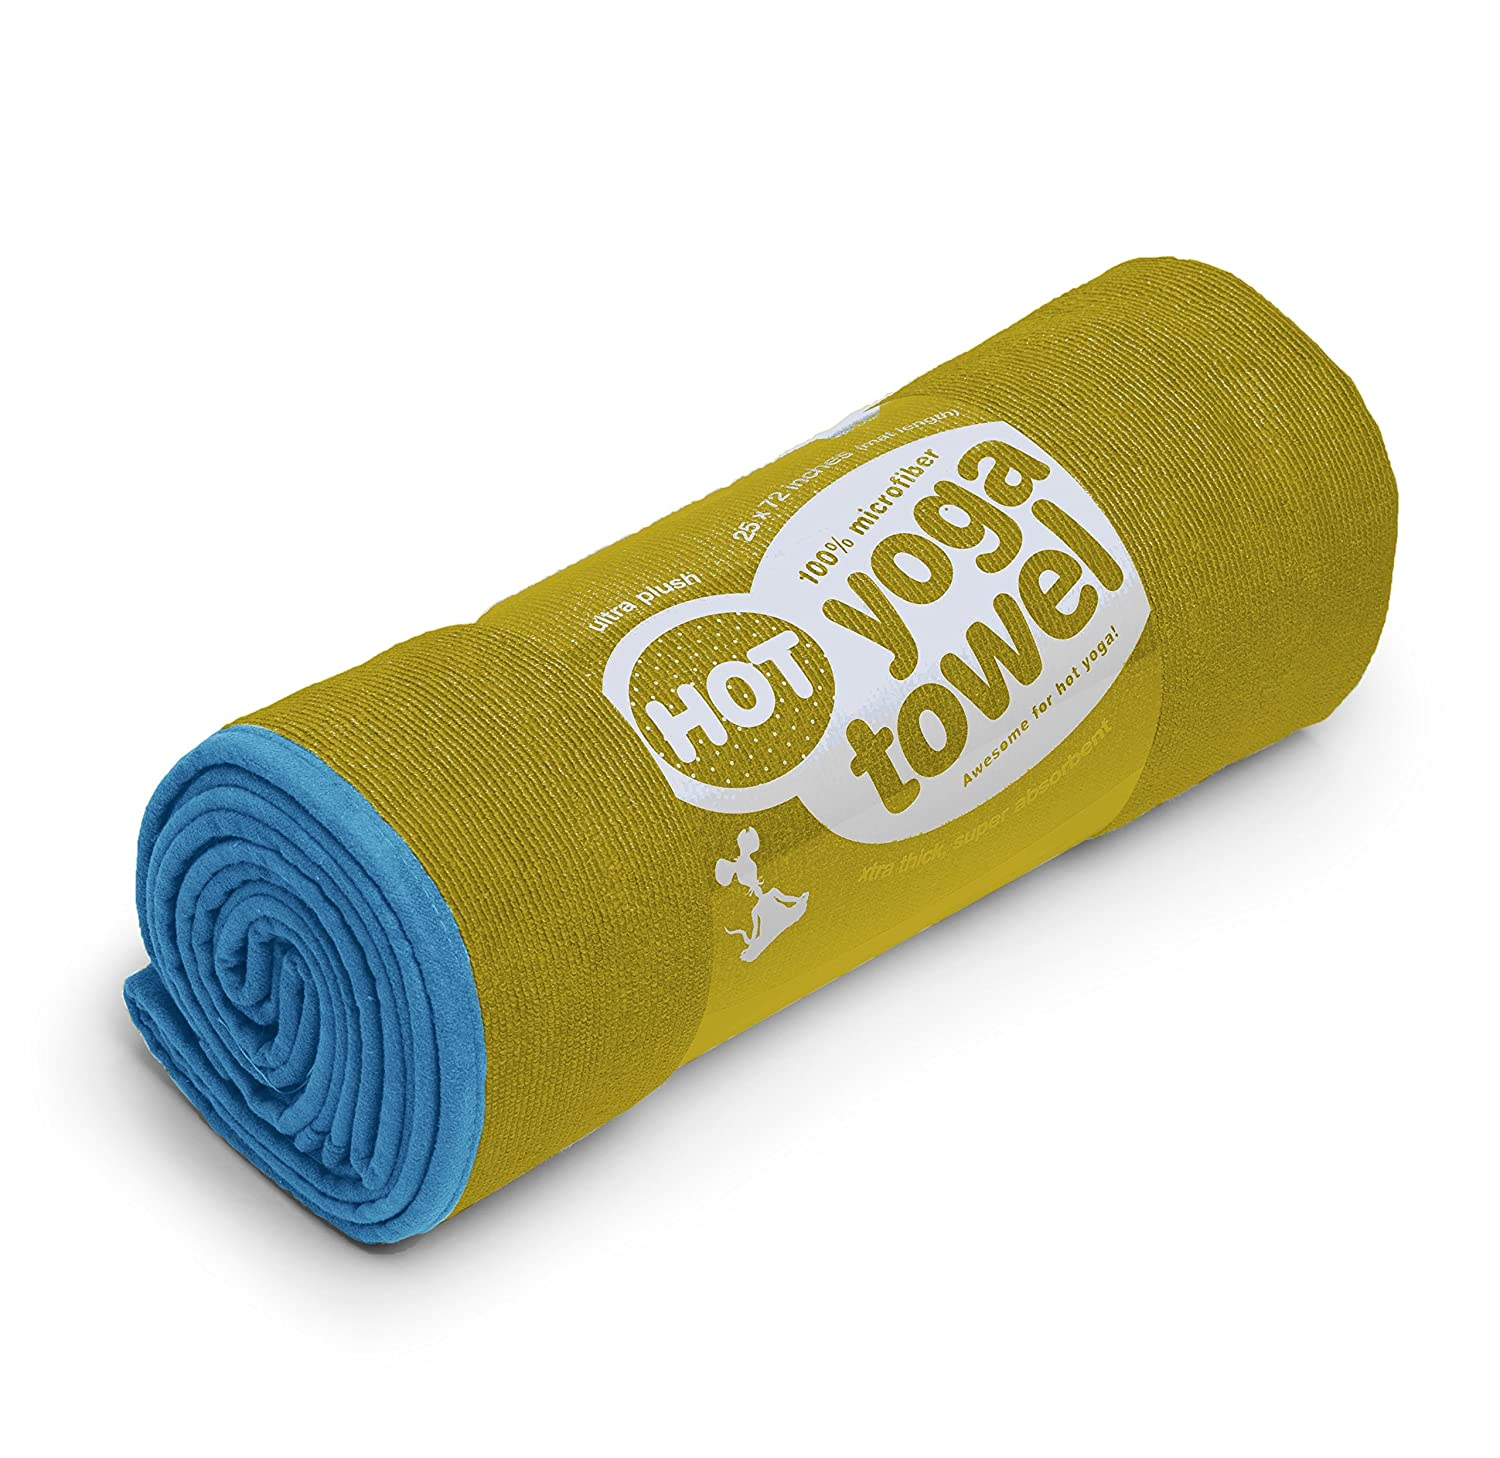 towel stone mymantra beach mat products marble print my mantra yoga